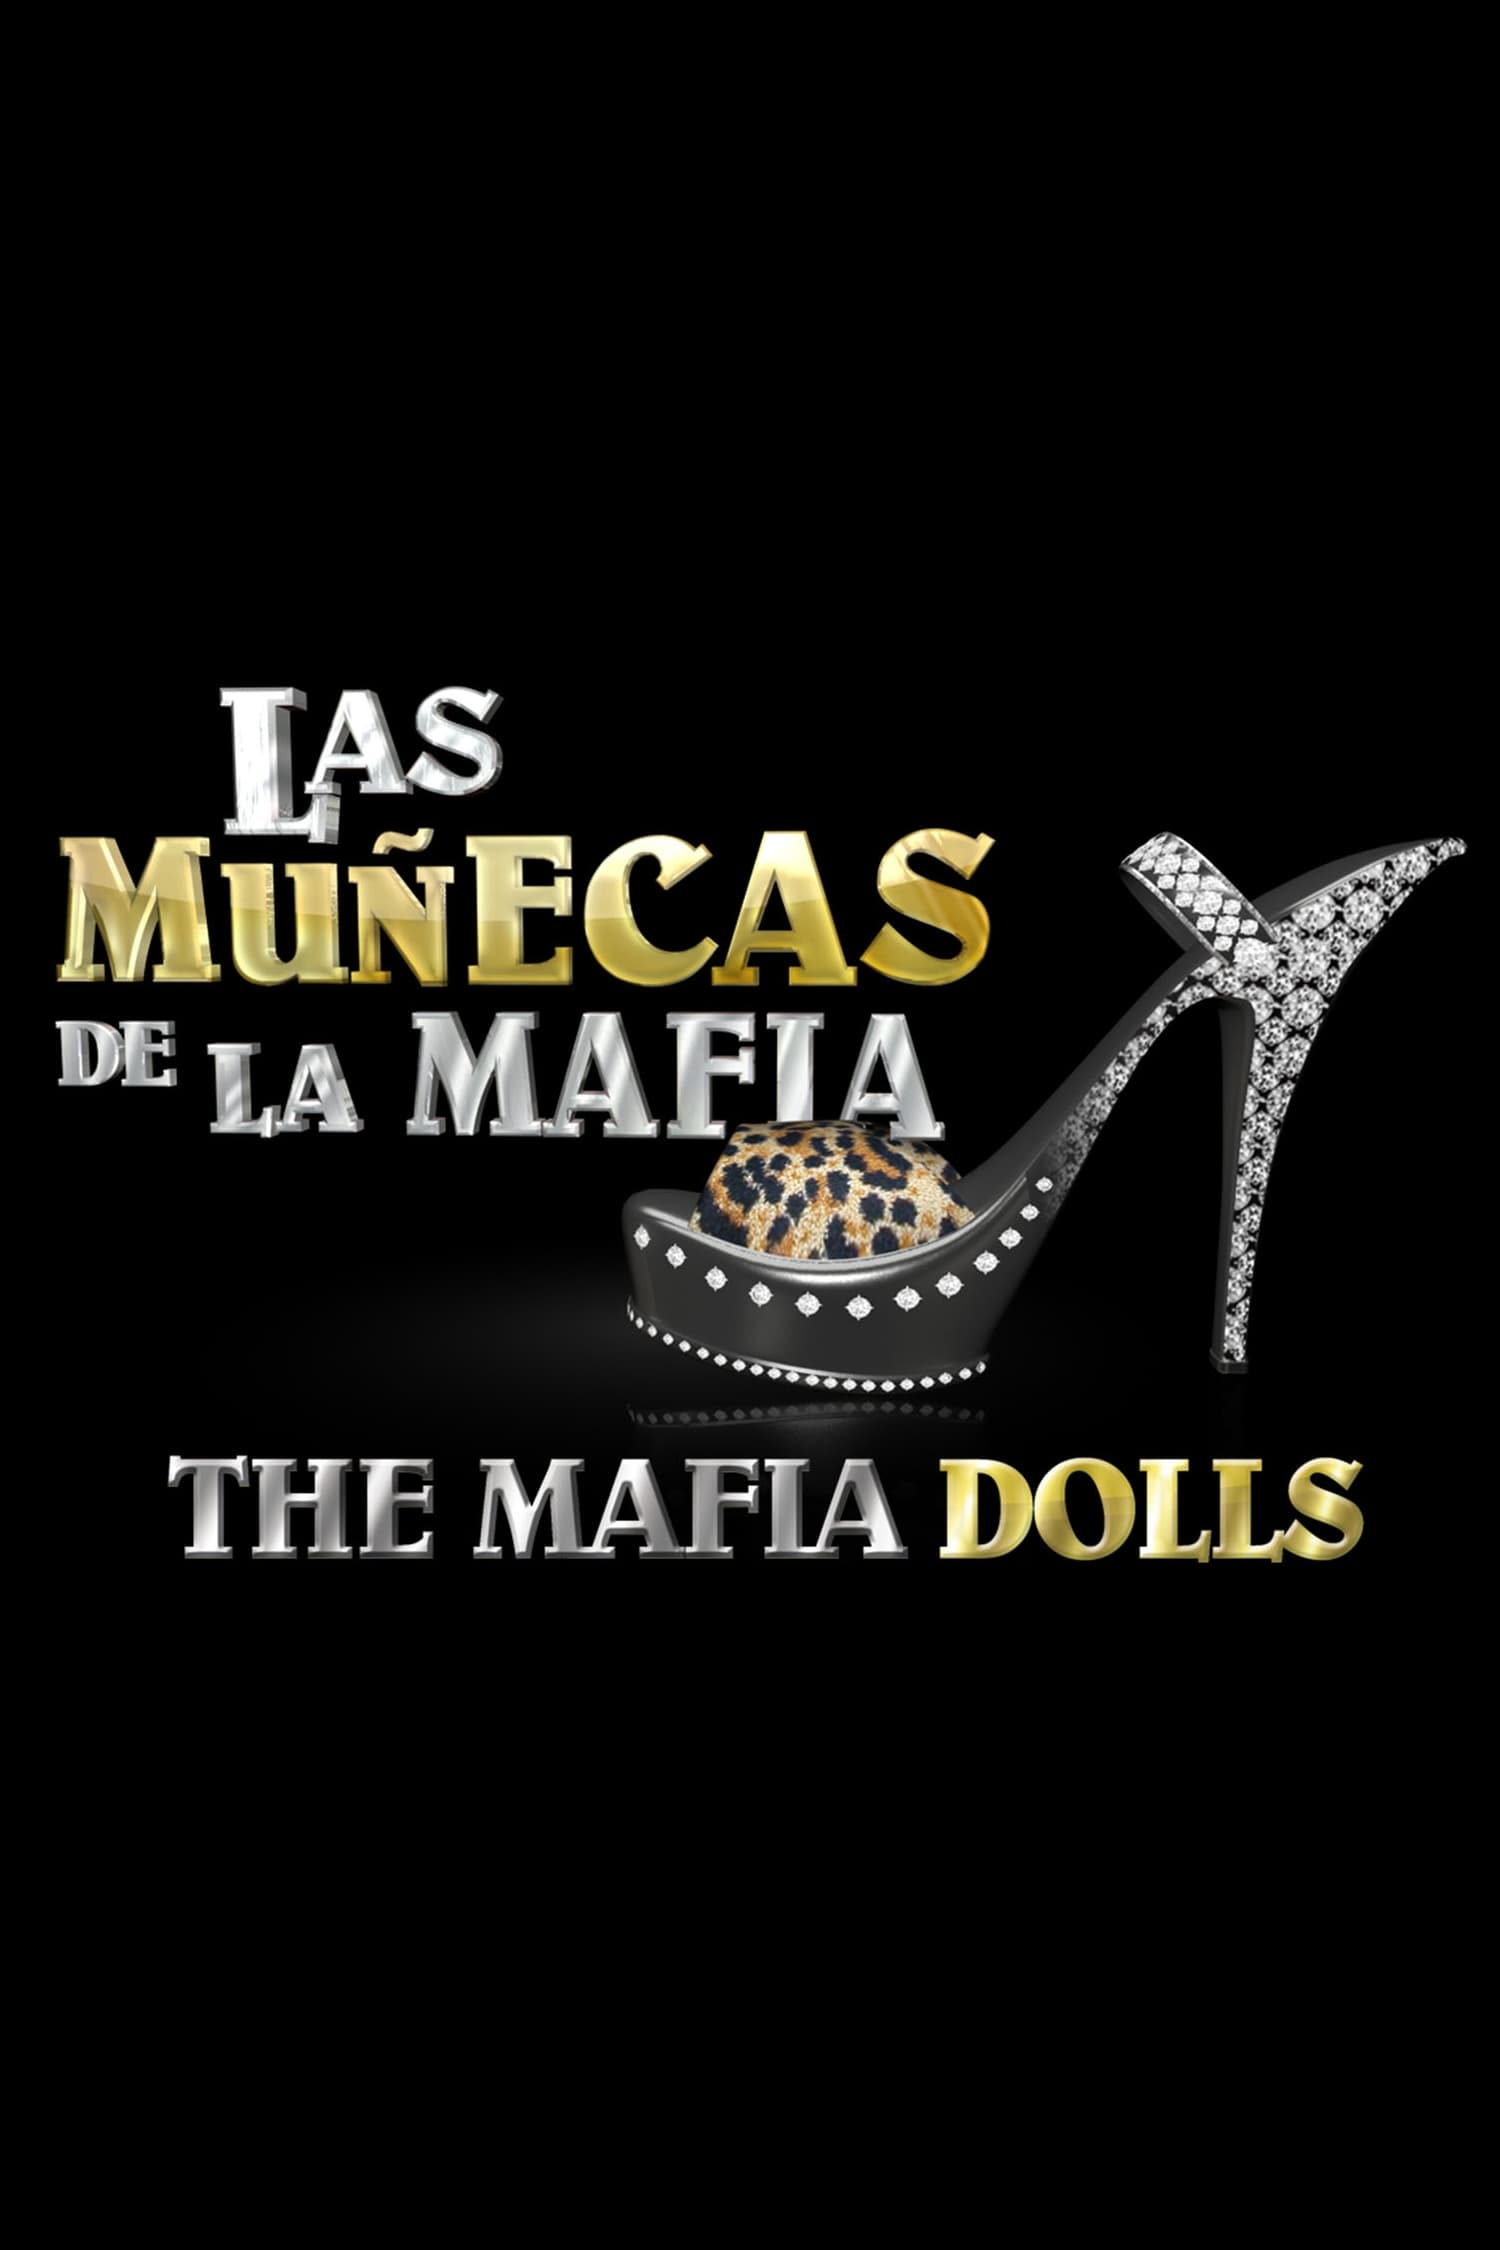 The Mafia Dolls (1970)